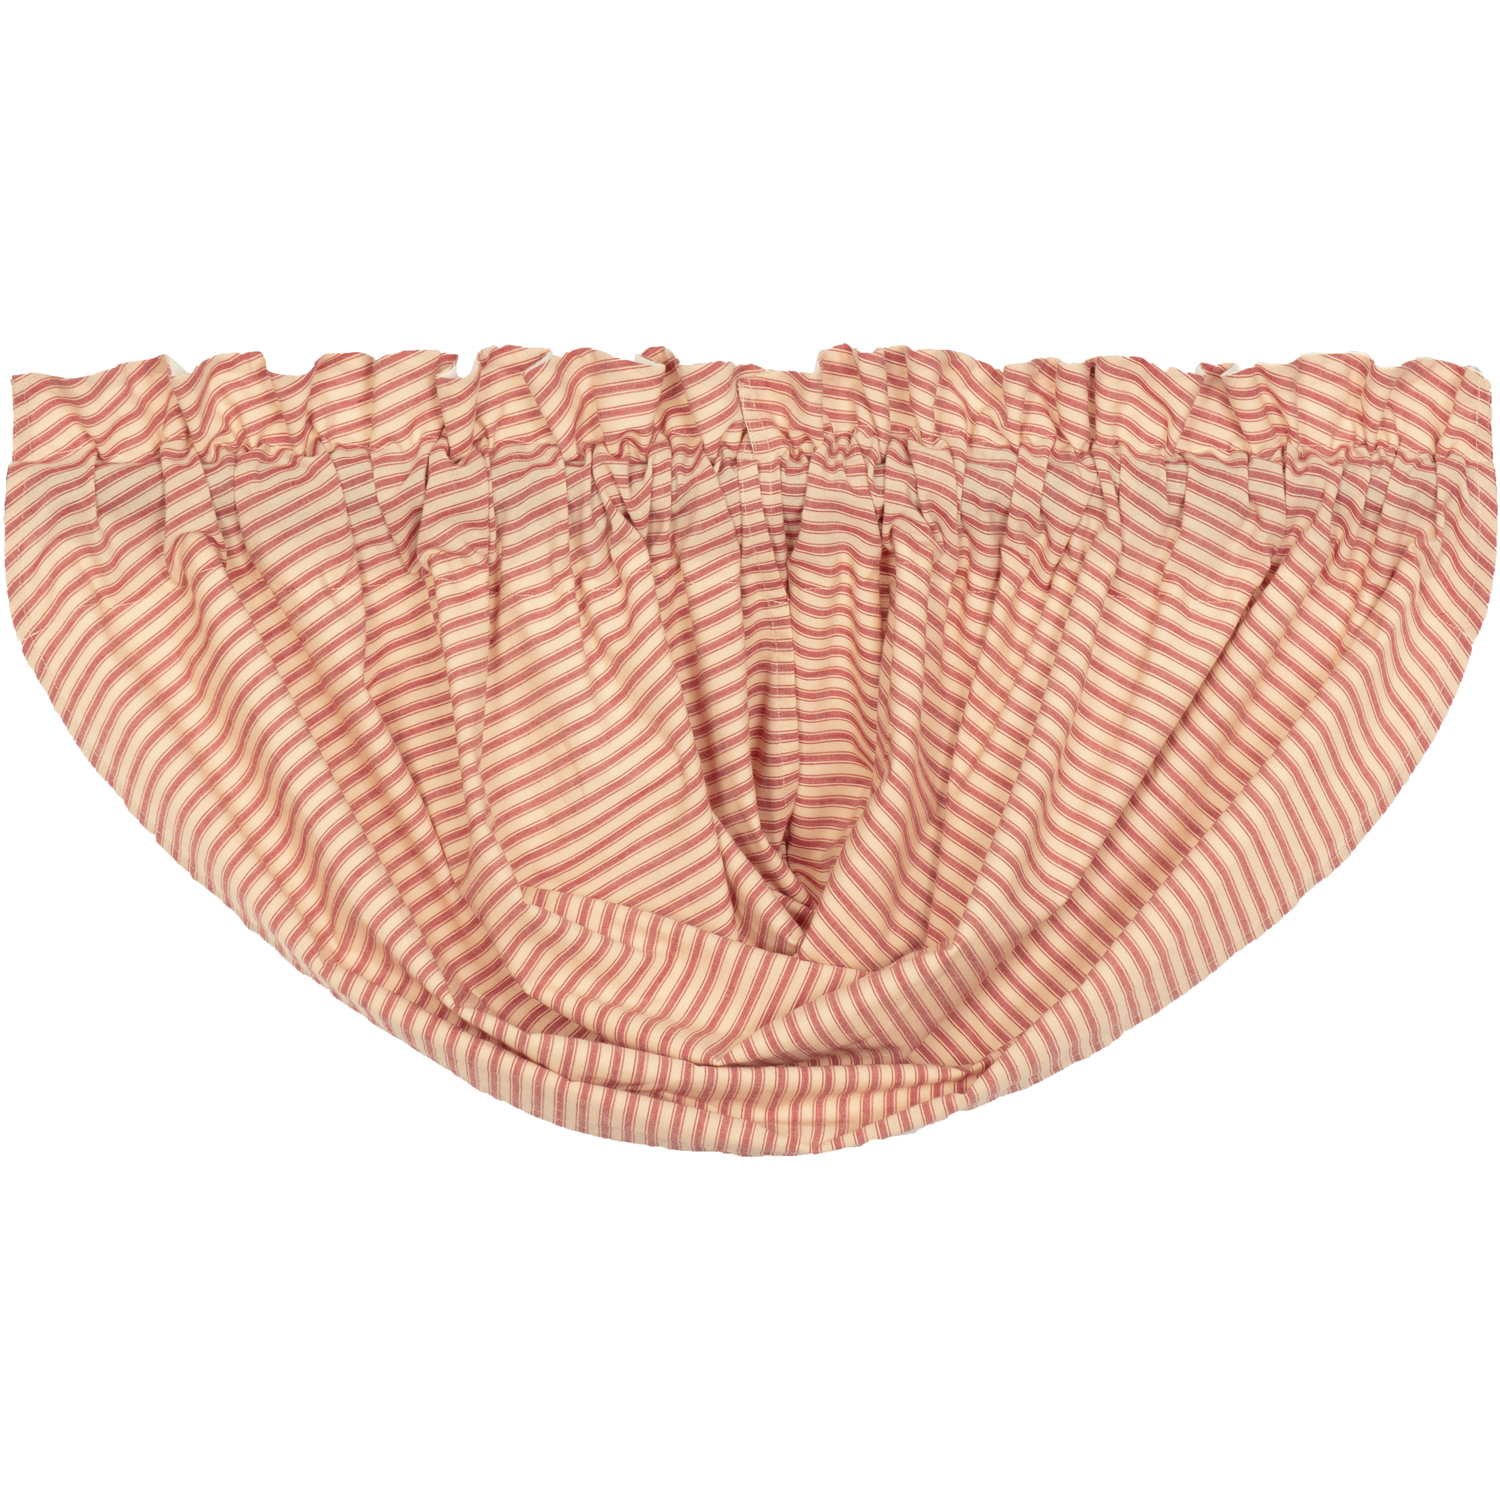 Sawyer Mill Red Ticking Stripe Balloon Valance 15x60